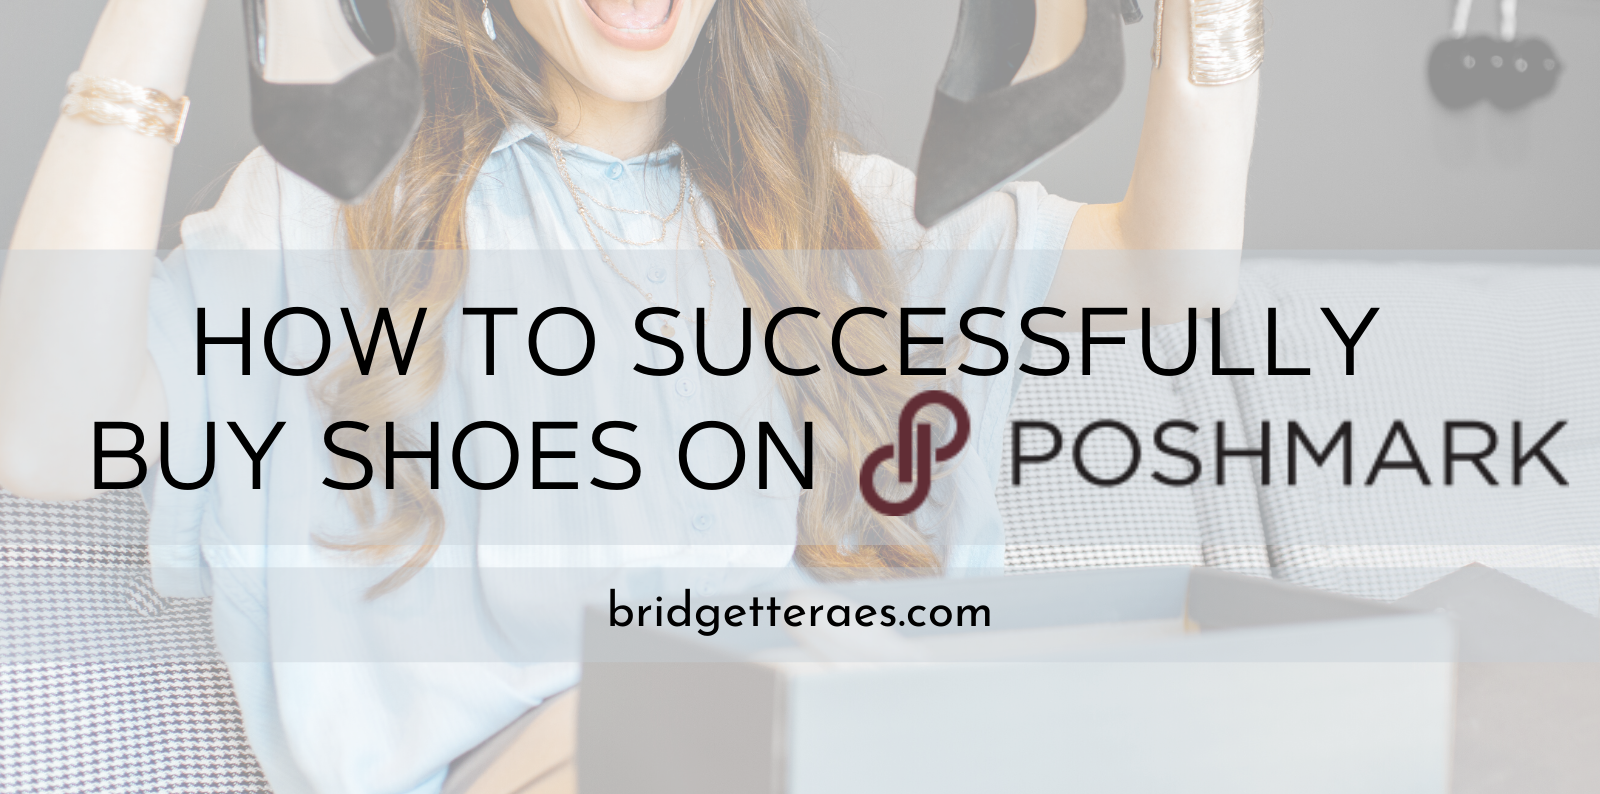 How to Successfully Buy Shoes on Poshmark